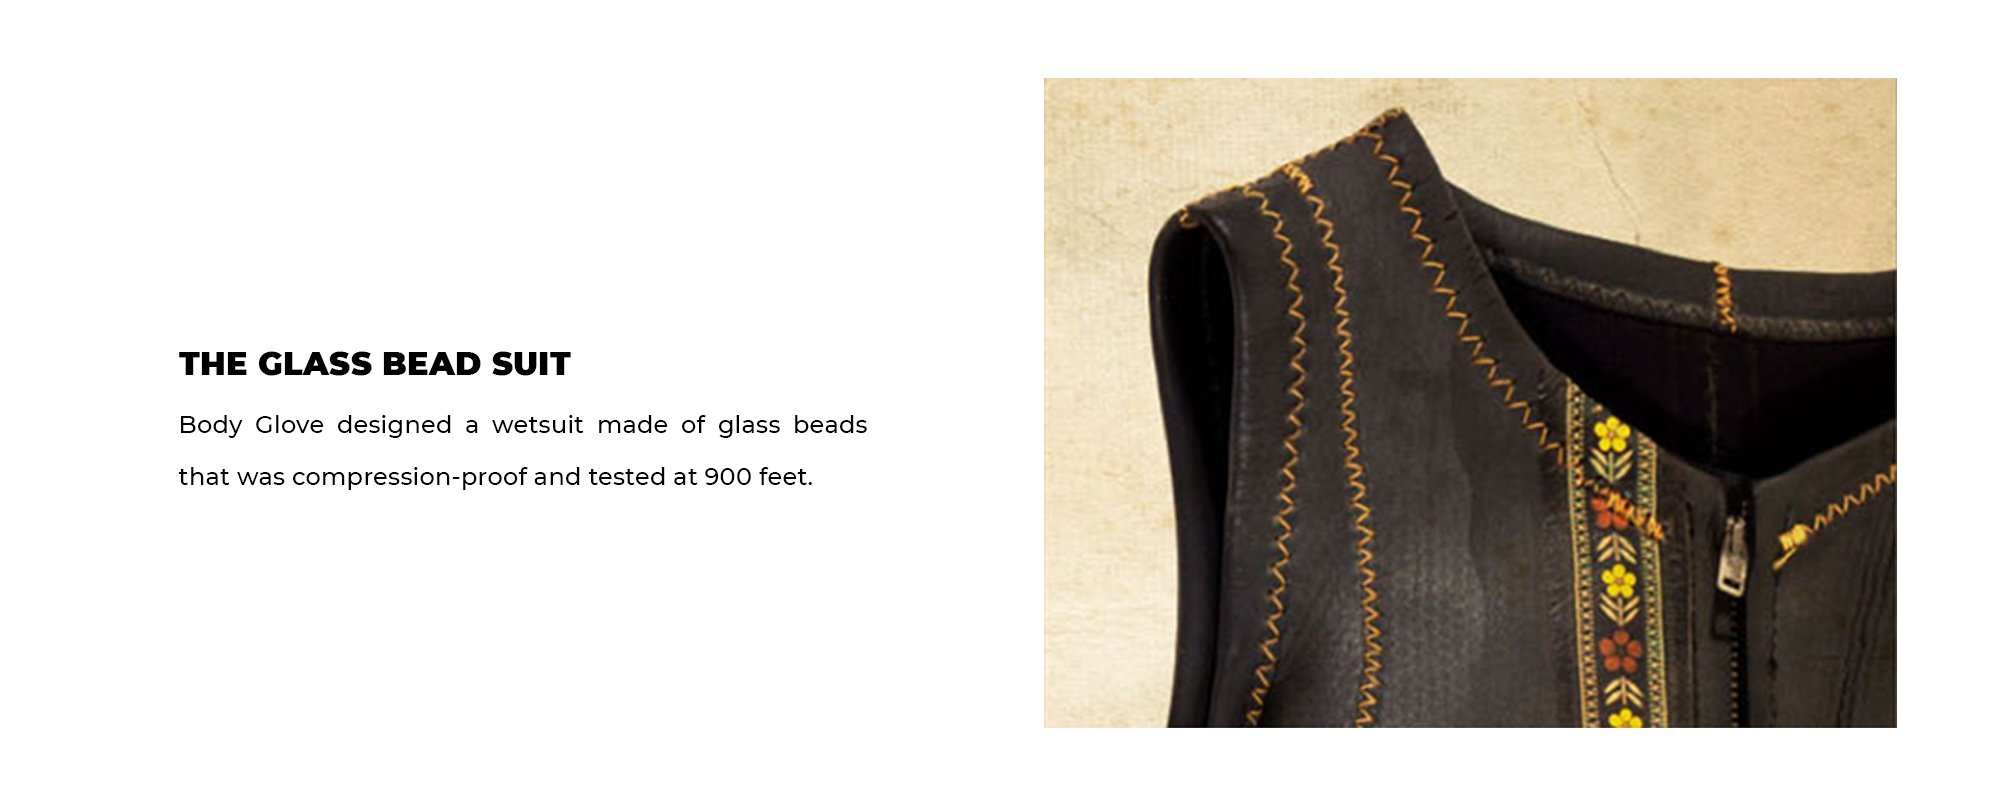 The Glass Bead Suit | Body Glove designed a wetsuit made of glass beads that was compression-proof and tested at 900 feet.